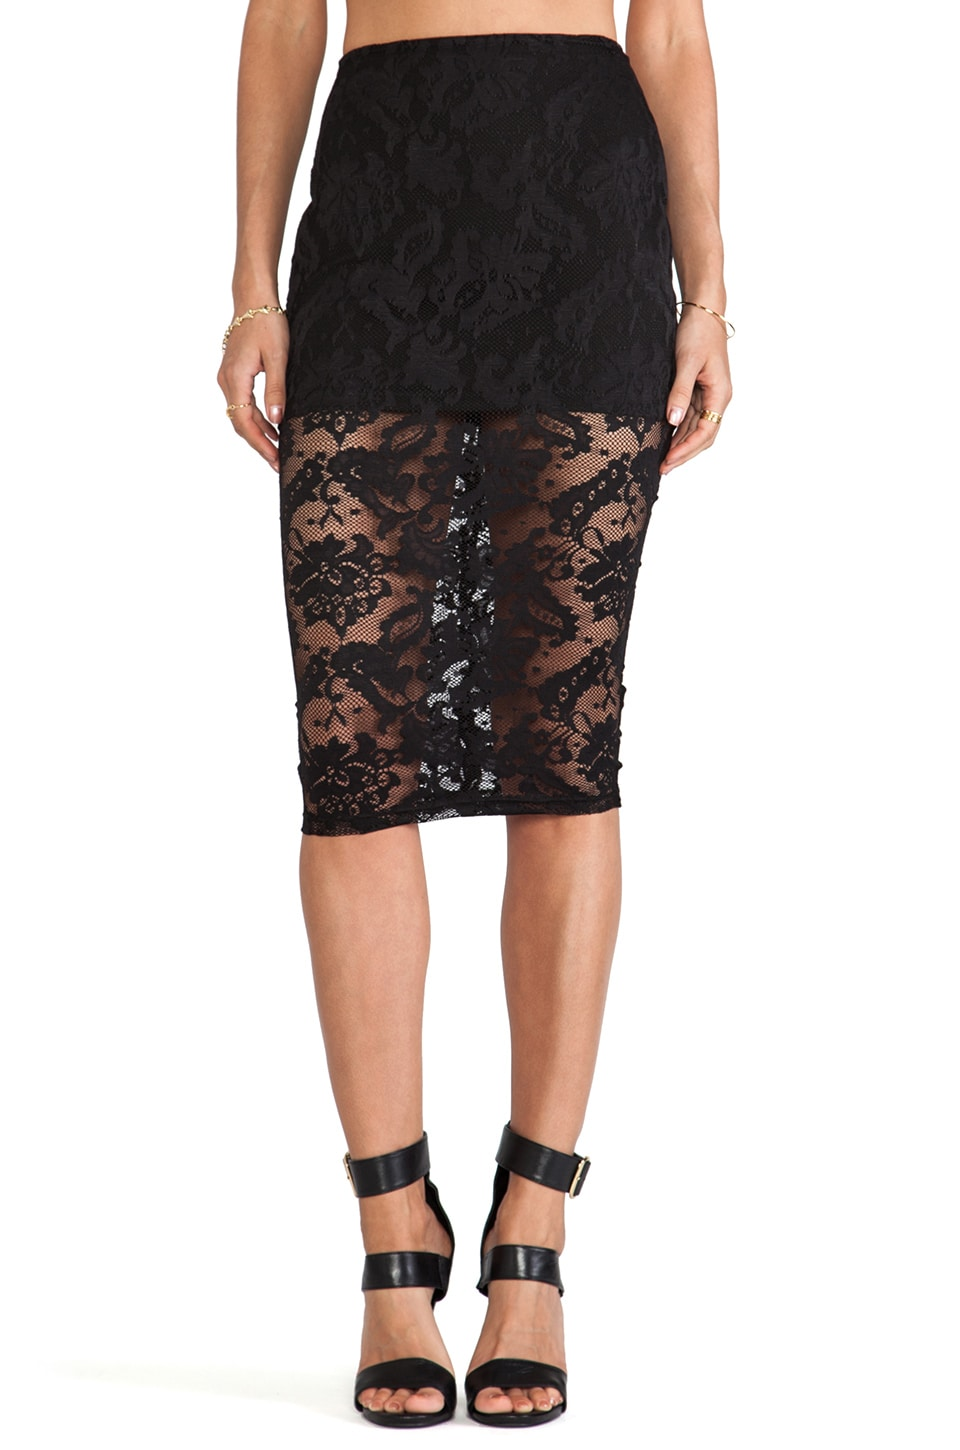 Nookie Renegade Lace Pencil Skirt in Black | REVOLVE